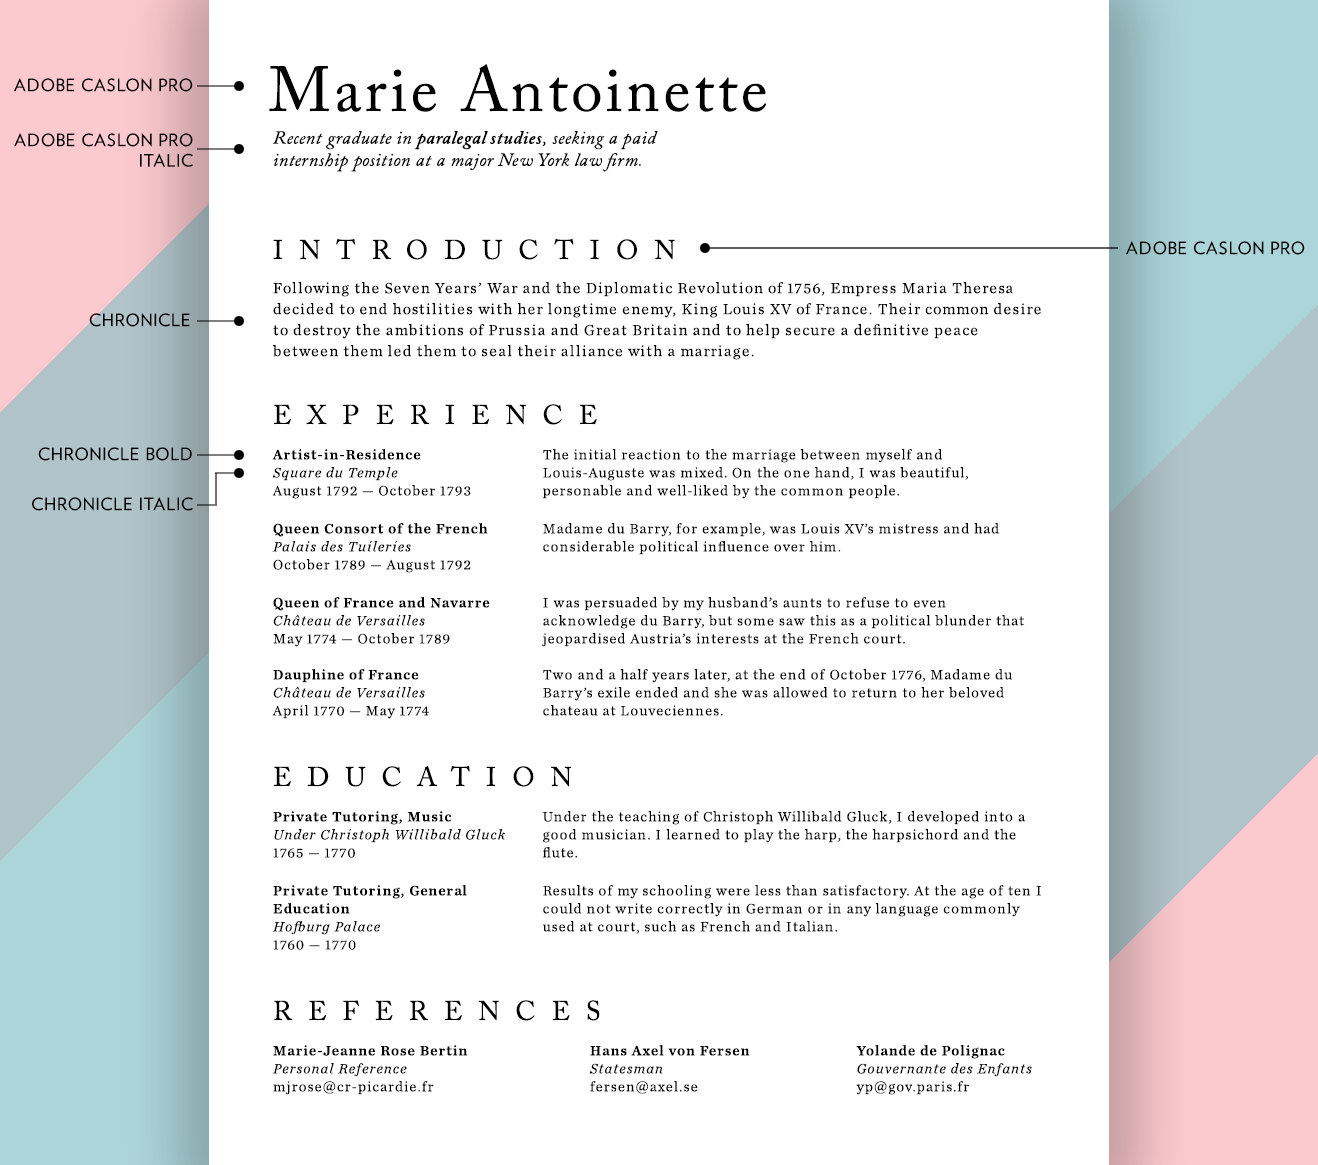 If You Donu0027t Trust Your Own Eye For Design, I Recommend Checking Out Some  Other Seriffed Résumés For Inspiration. Like These Fake Ones That I Just  Made: On Fonts To Use On A Resume